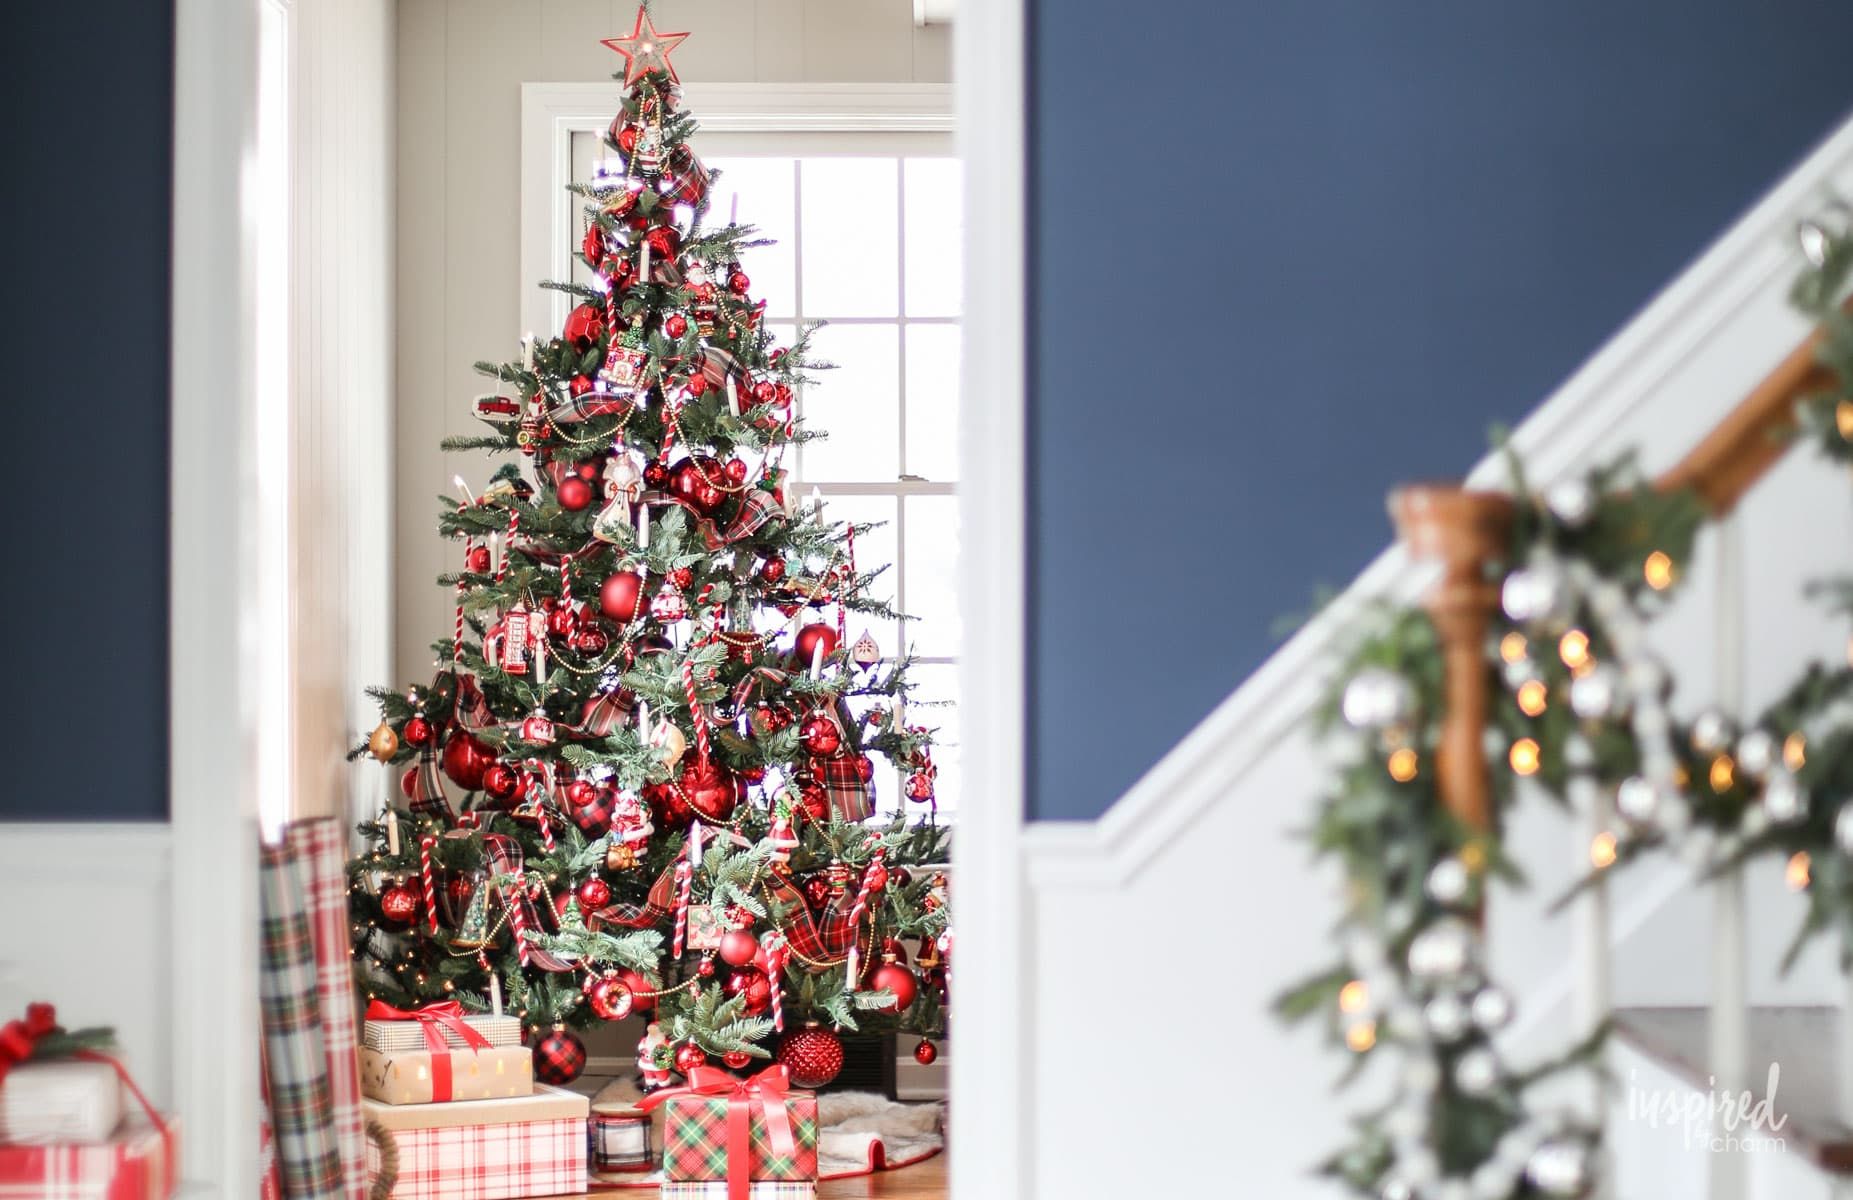 How I Plan My Christmas Home Decor / Tips and Tricks for Holiday Decor #christmas #decor #holiday #decorating #planing #inspiration #ideas